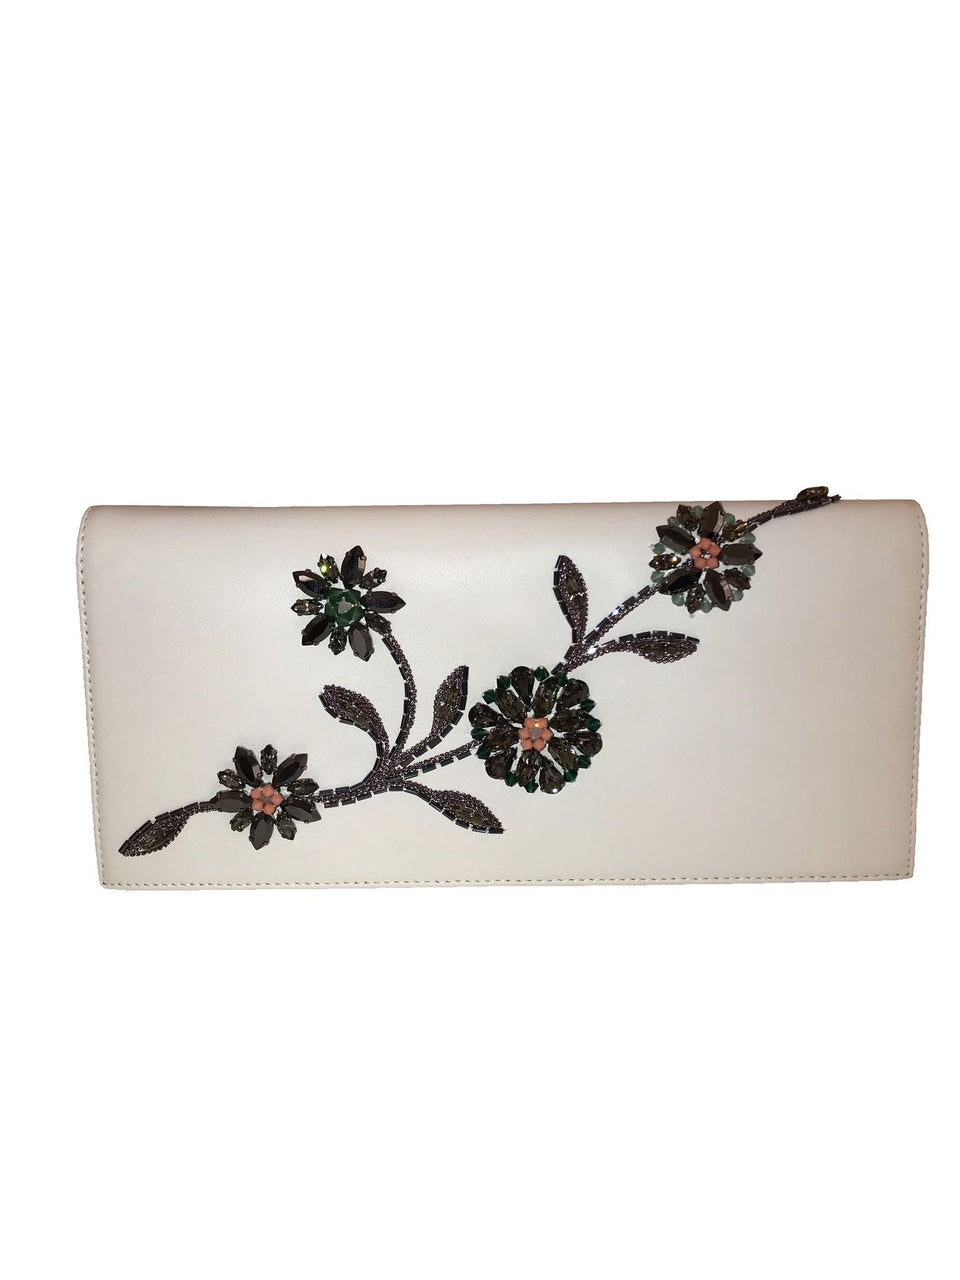 White Leather Embellished Clutch w/ Chain